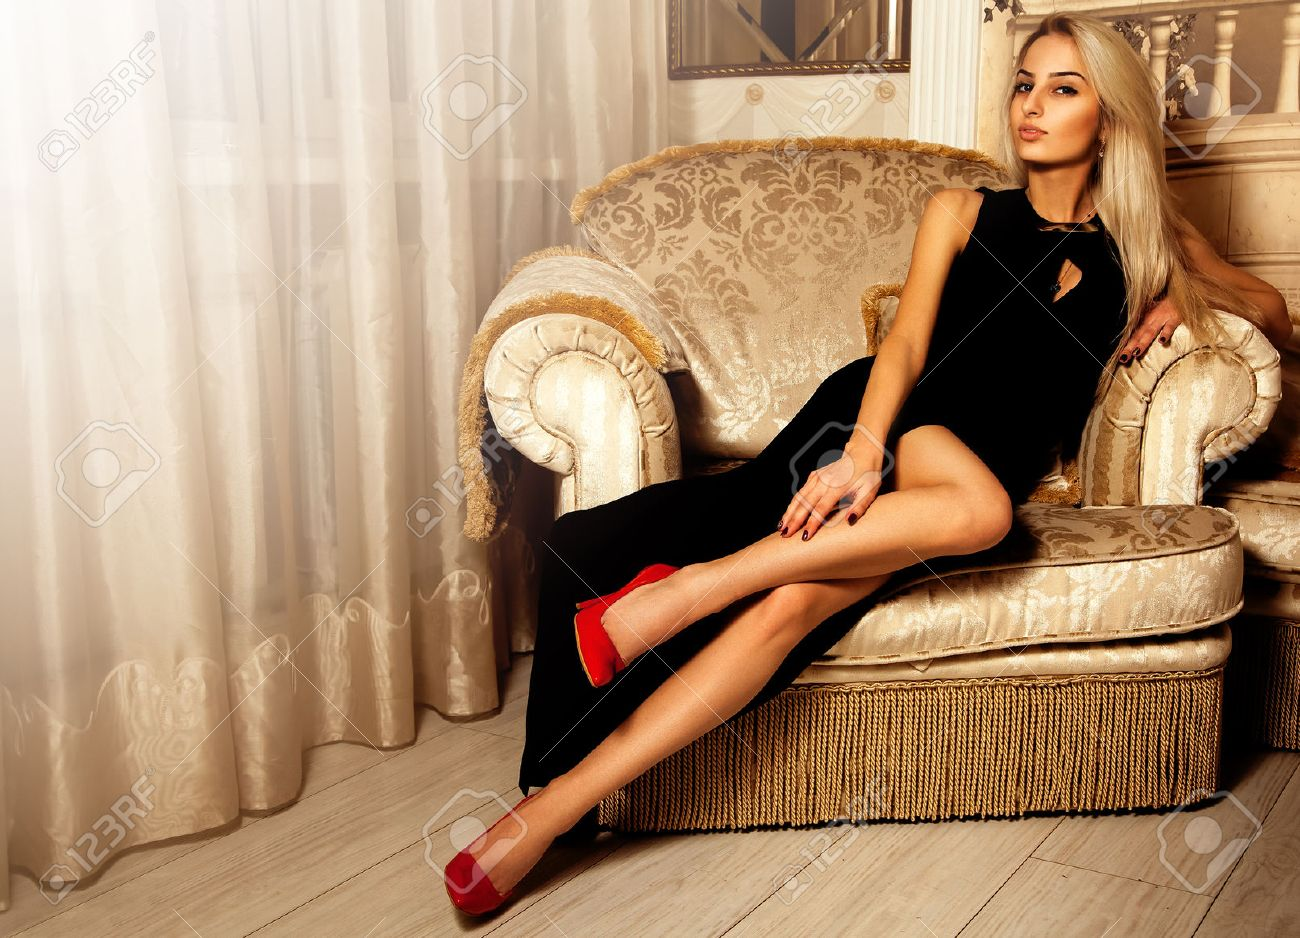 Hot blonde and luxury